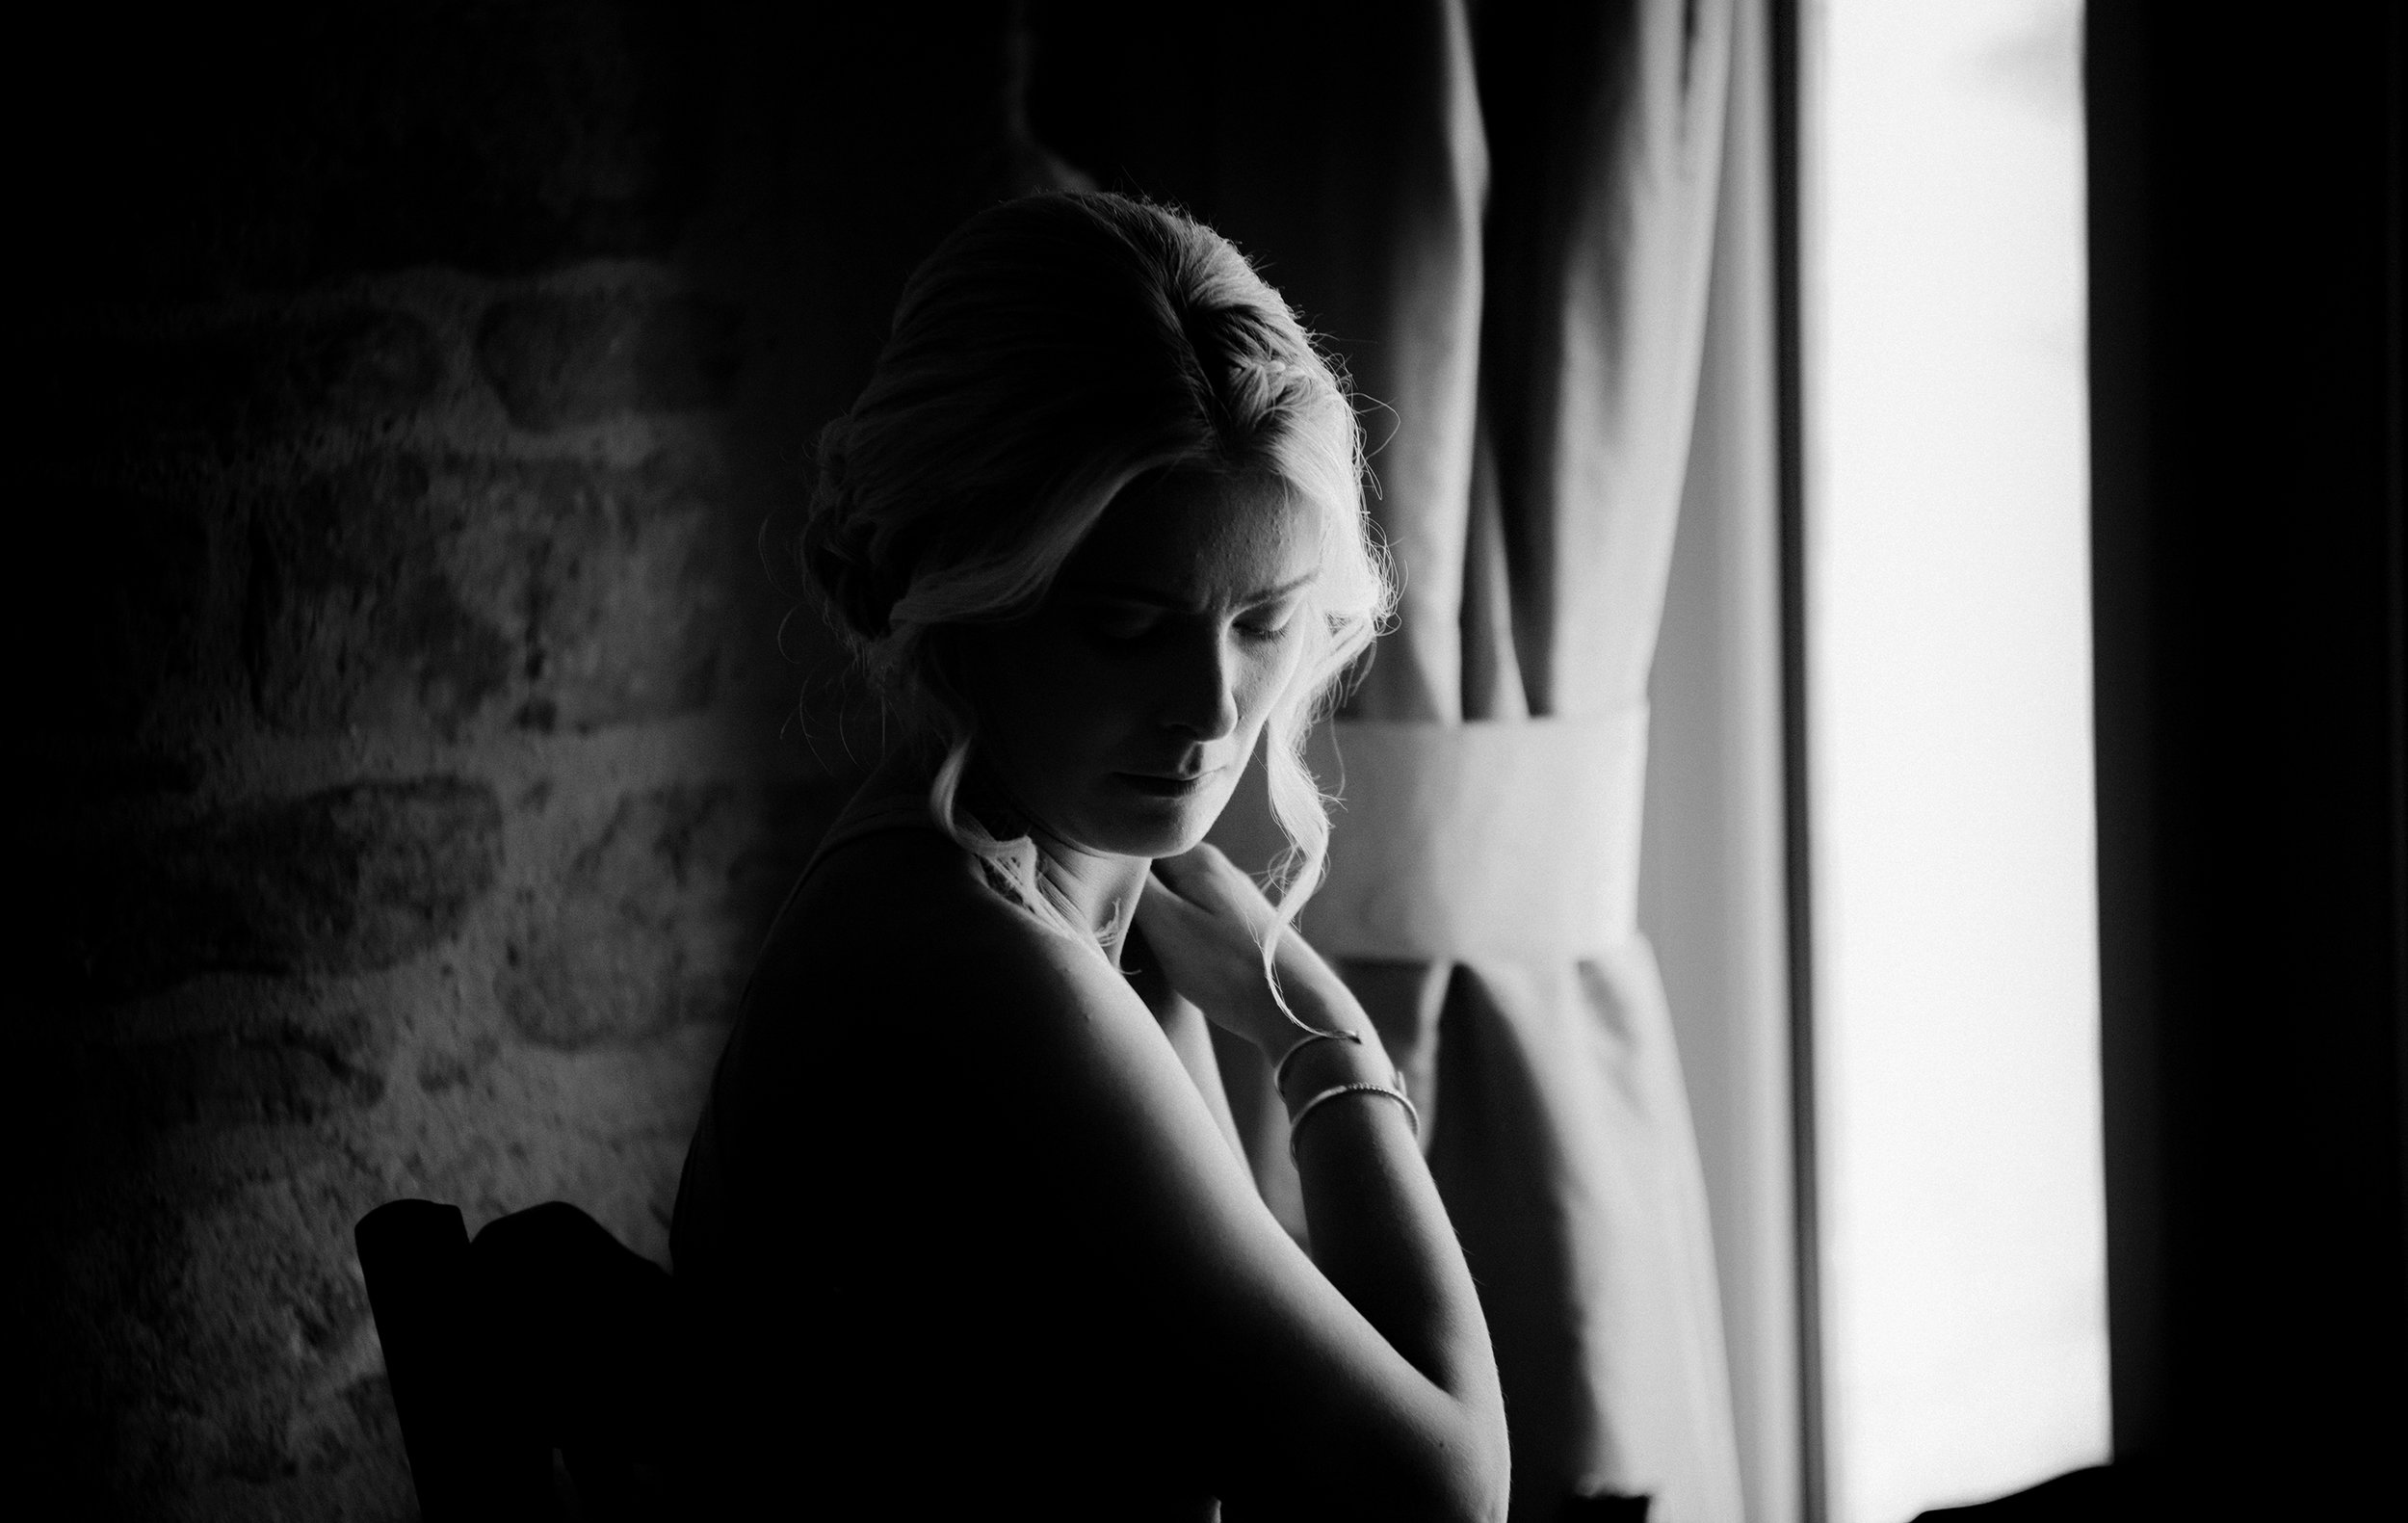 Beautiful black and white moody images of a bridesmaid in the window light